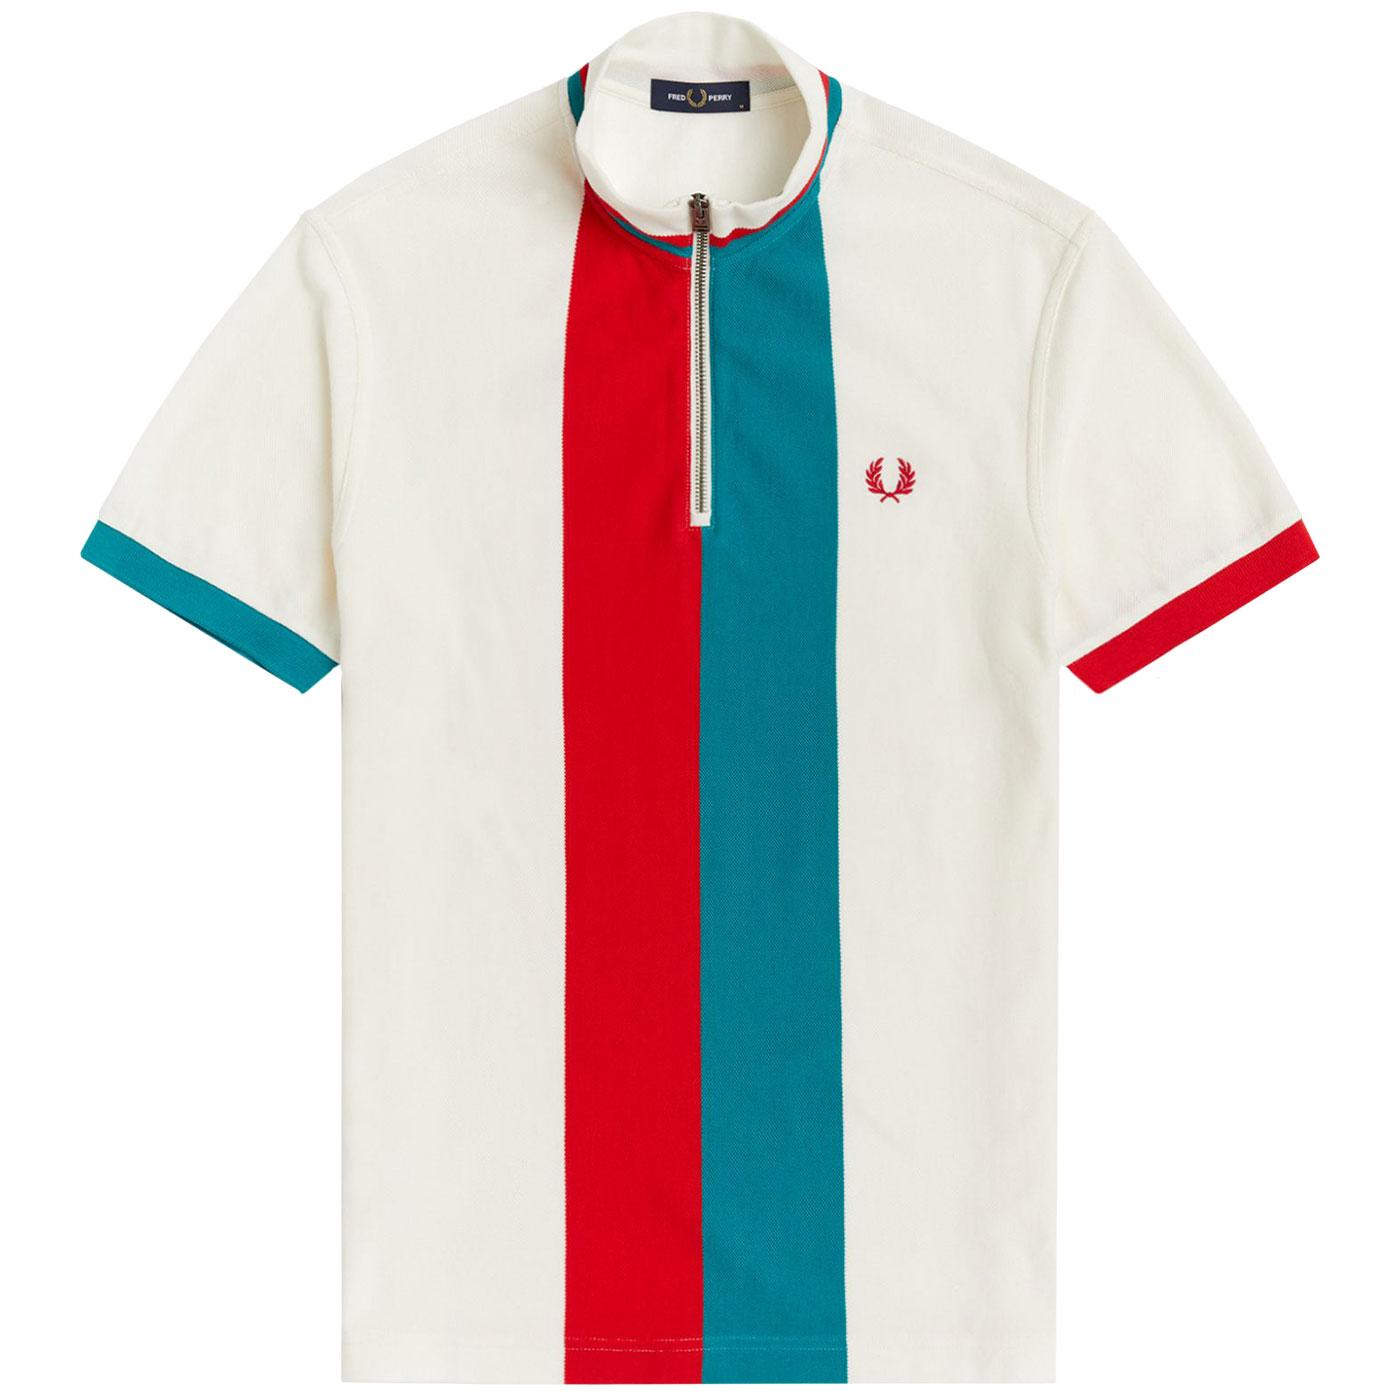 FRED PERRY Mod Bold Stripe Funnel Neck Cycling Top